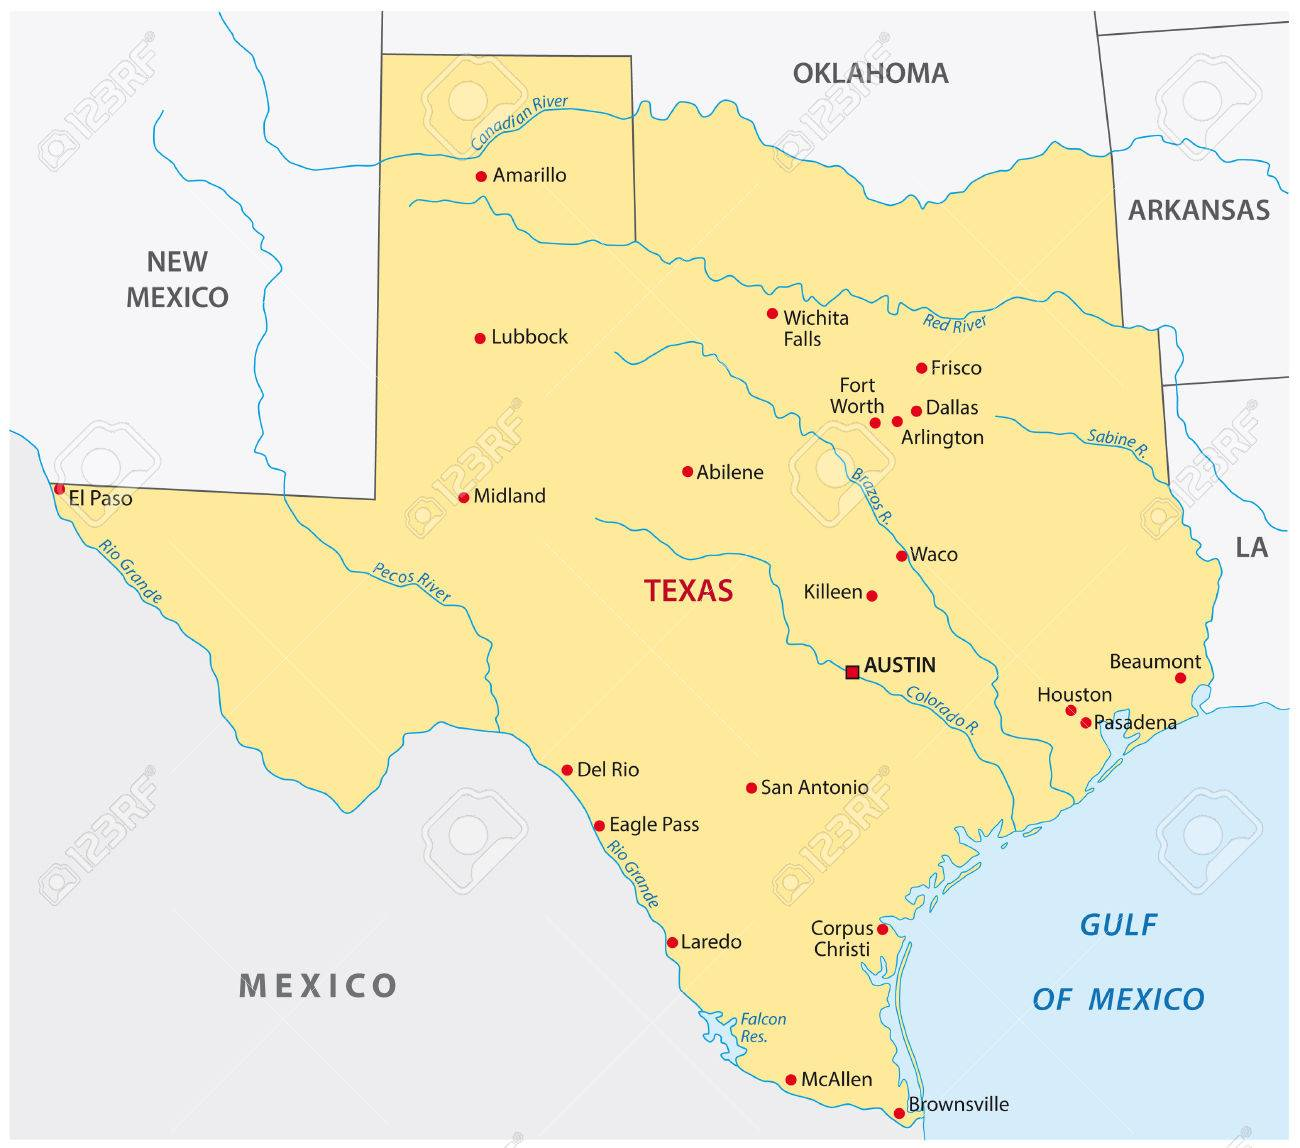 Simple Texas State Map Royalty Free Cliparts Vectors And Stock - State map texas